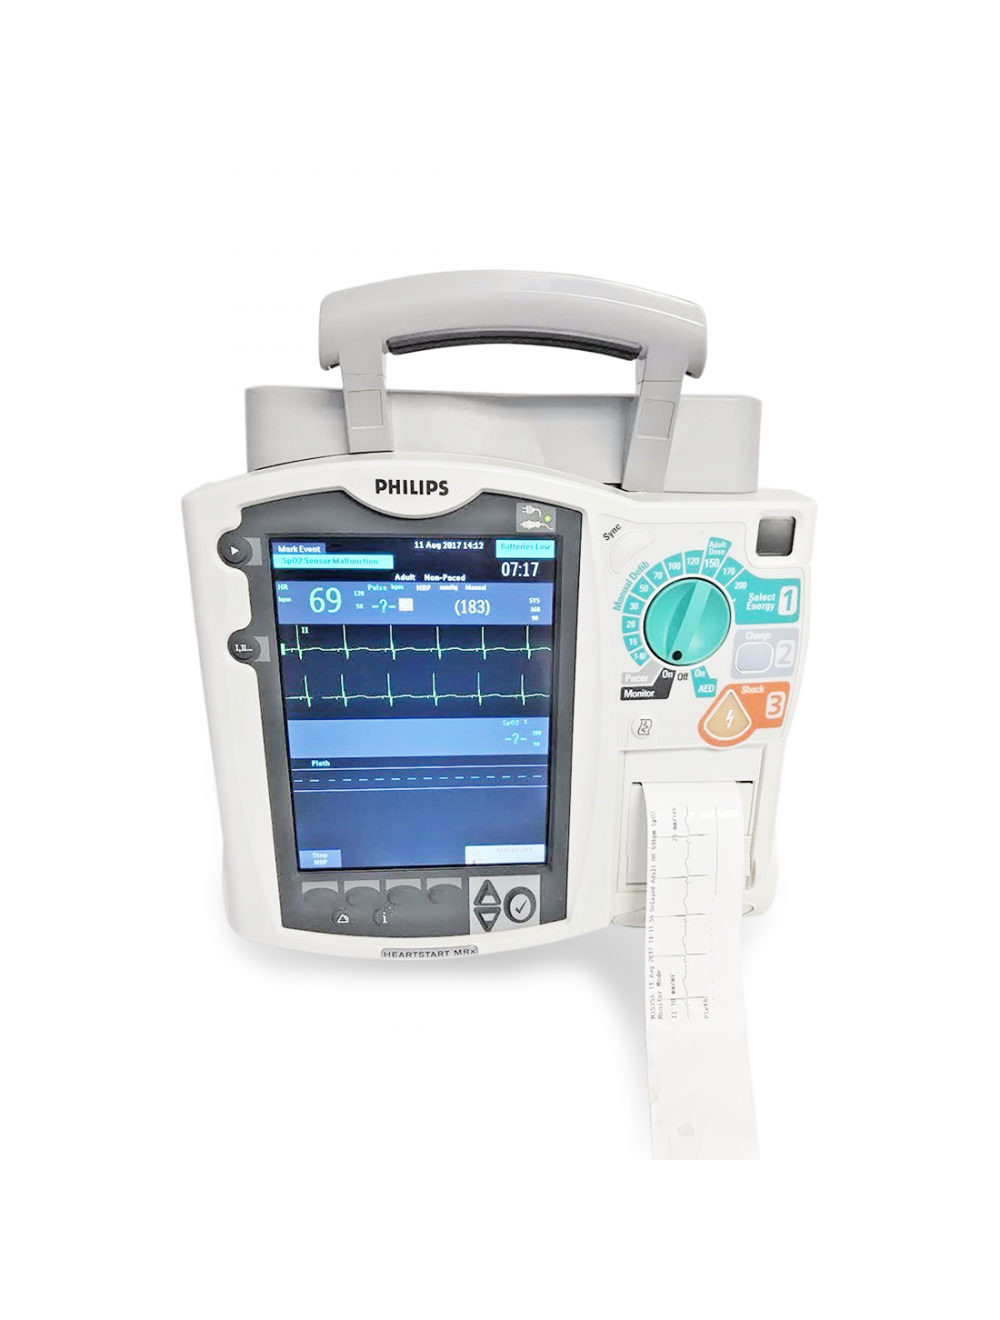 Philips Heartstart MRx For Sale - New, Used, Refurbished